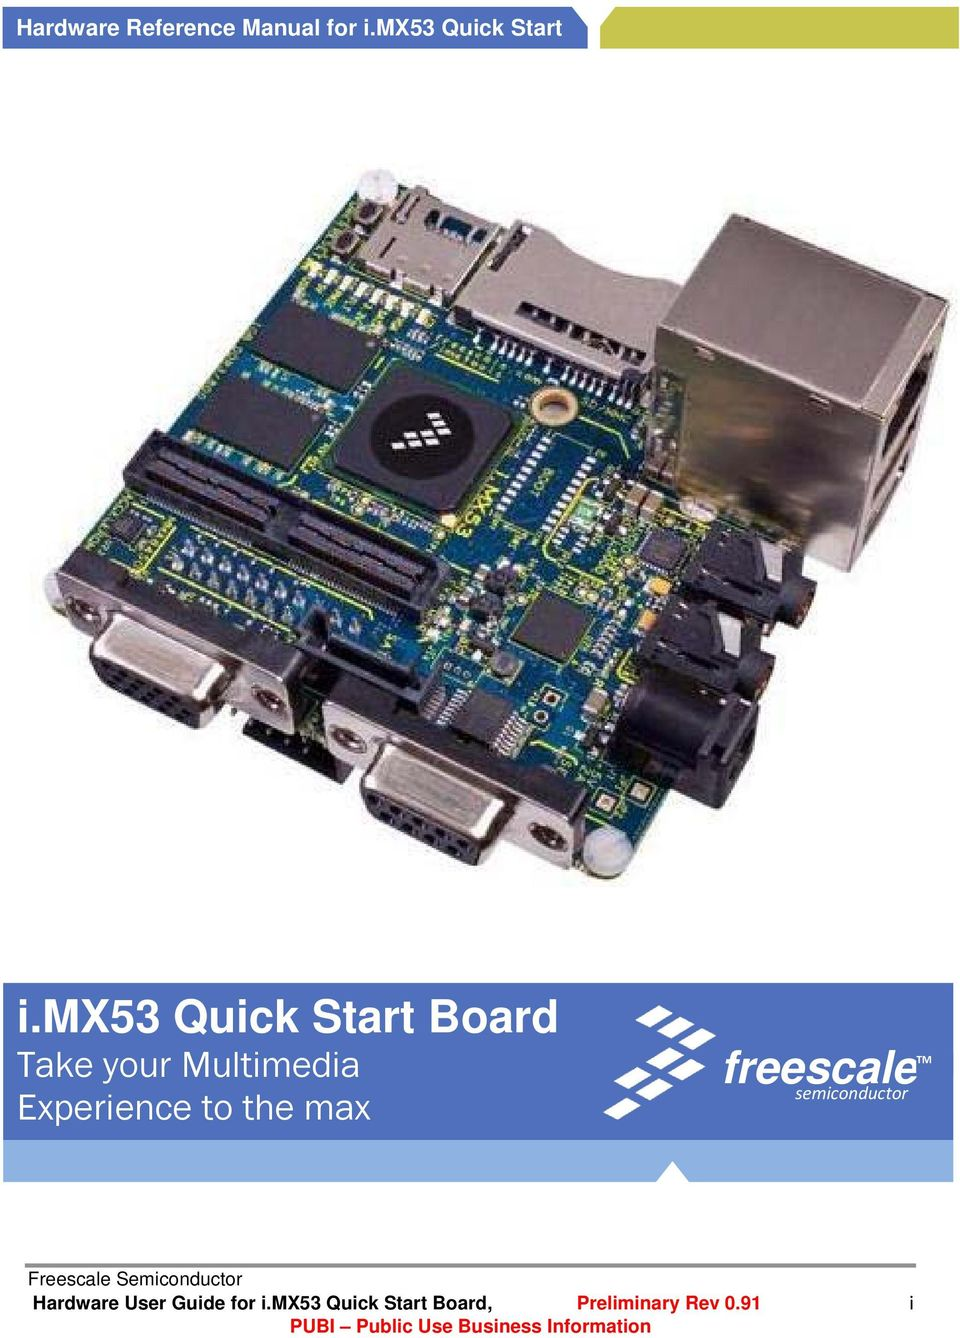 Experience to the max freescale TM semiconductor